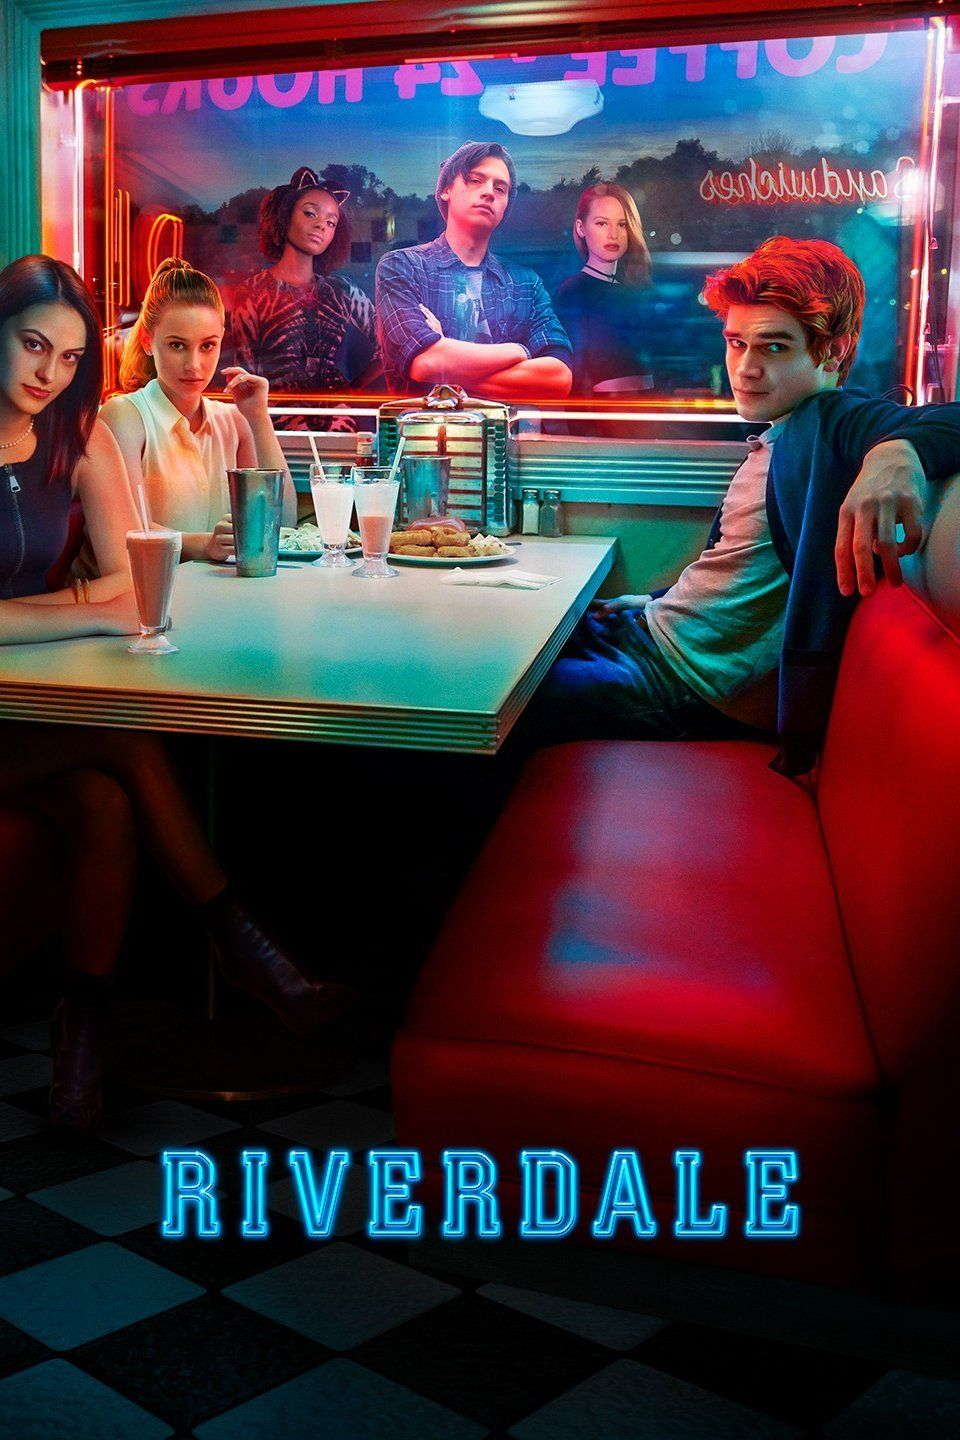 I love the whole neon aesthetic of the show Riverdale